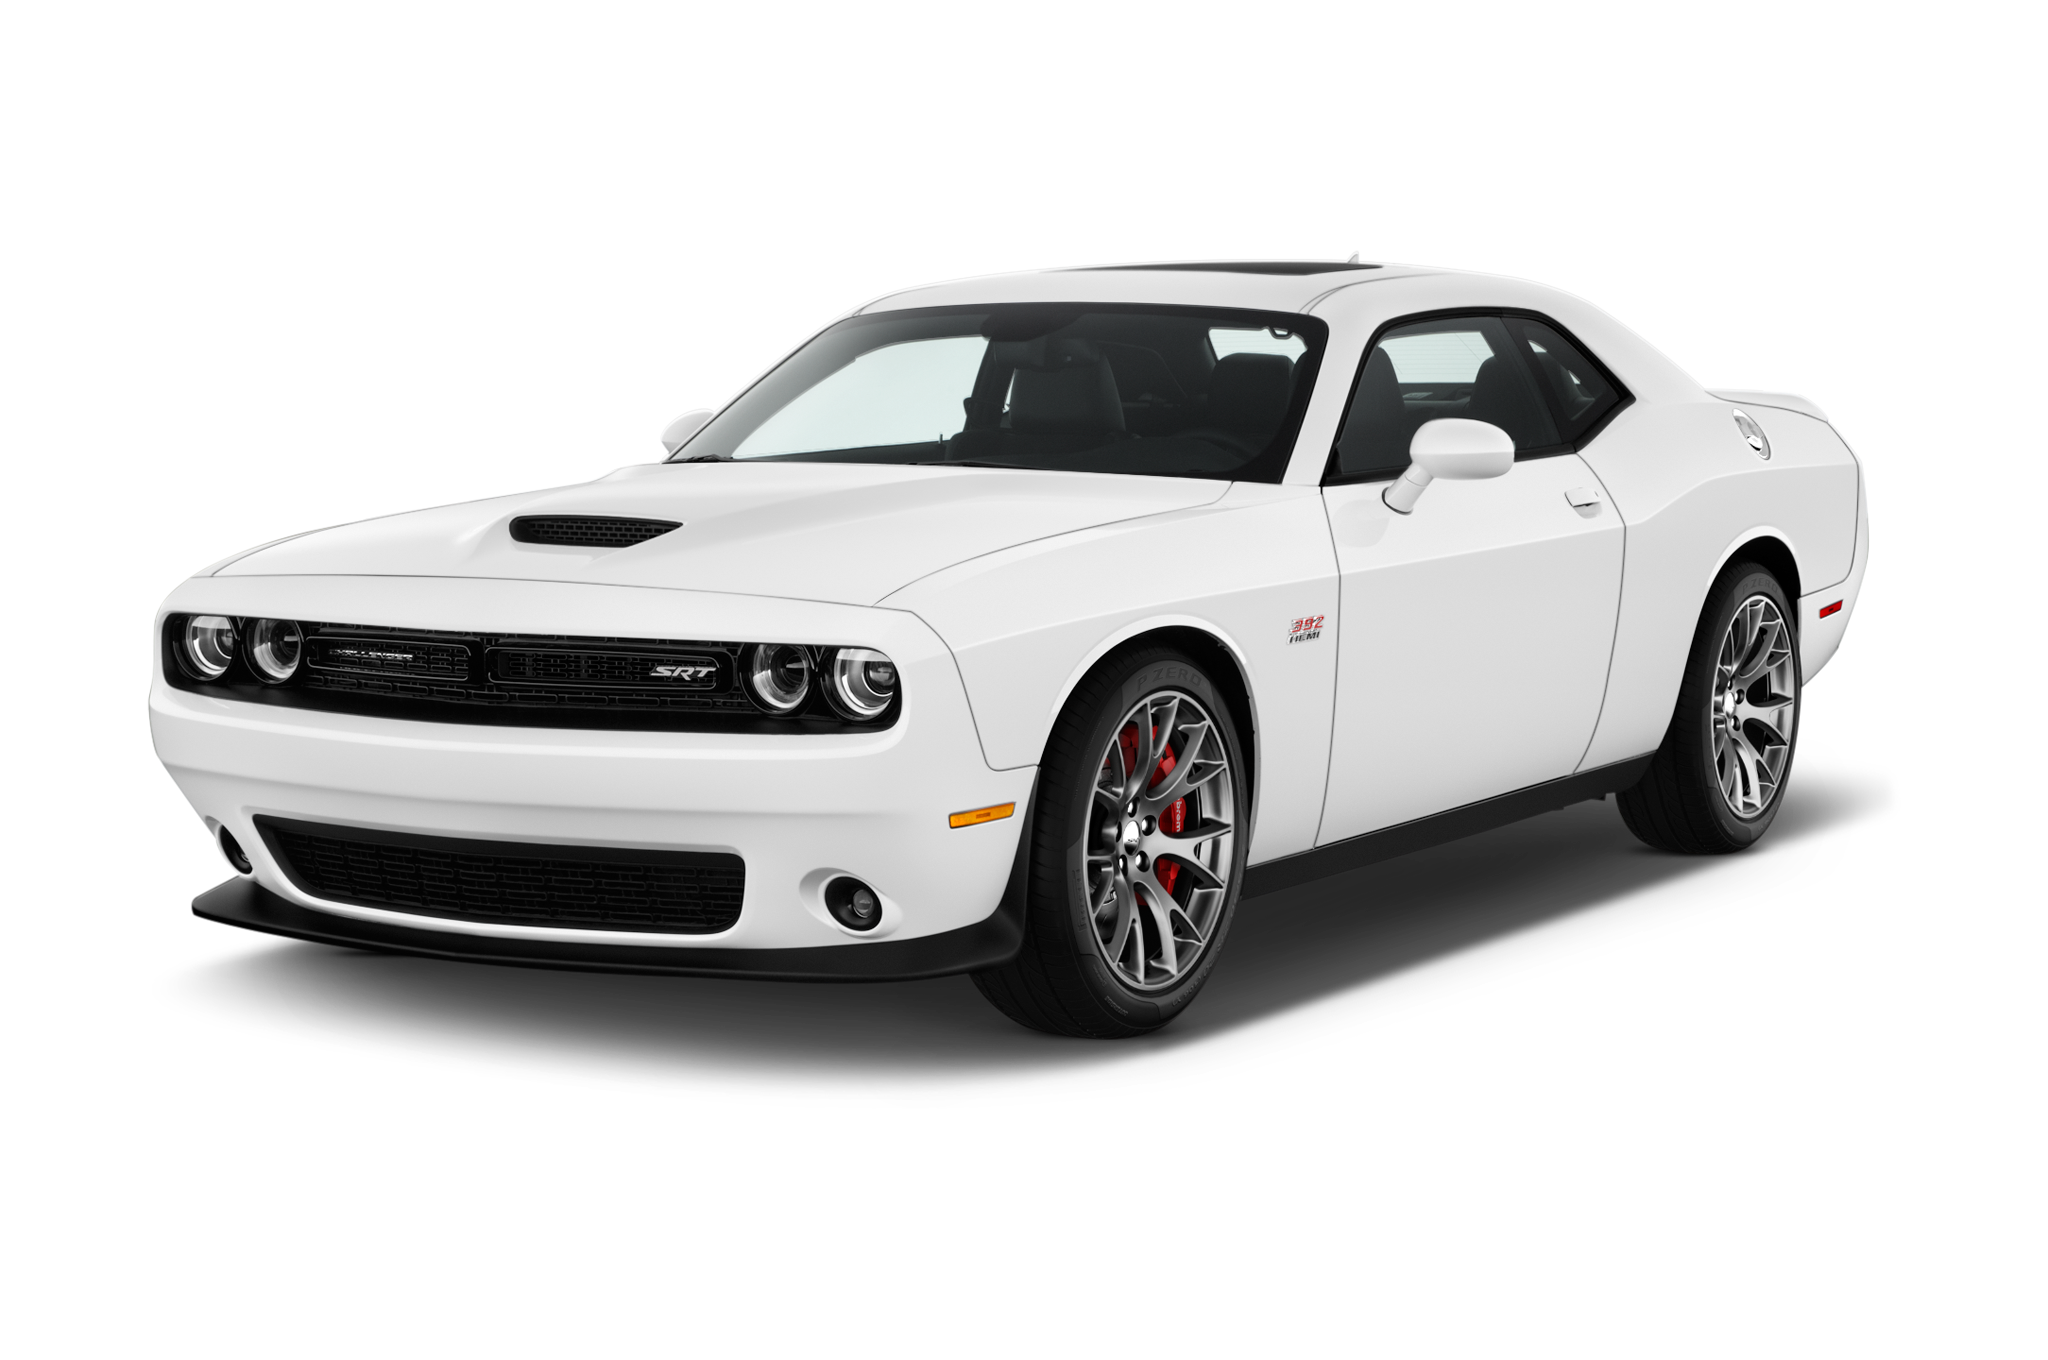 Dodge Challenger - predatory oil mask from the past